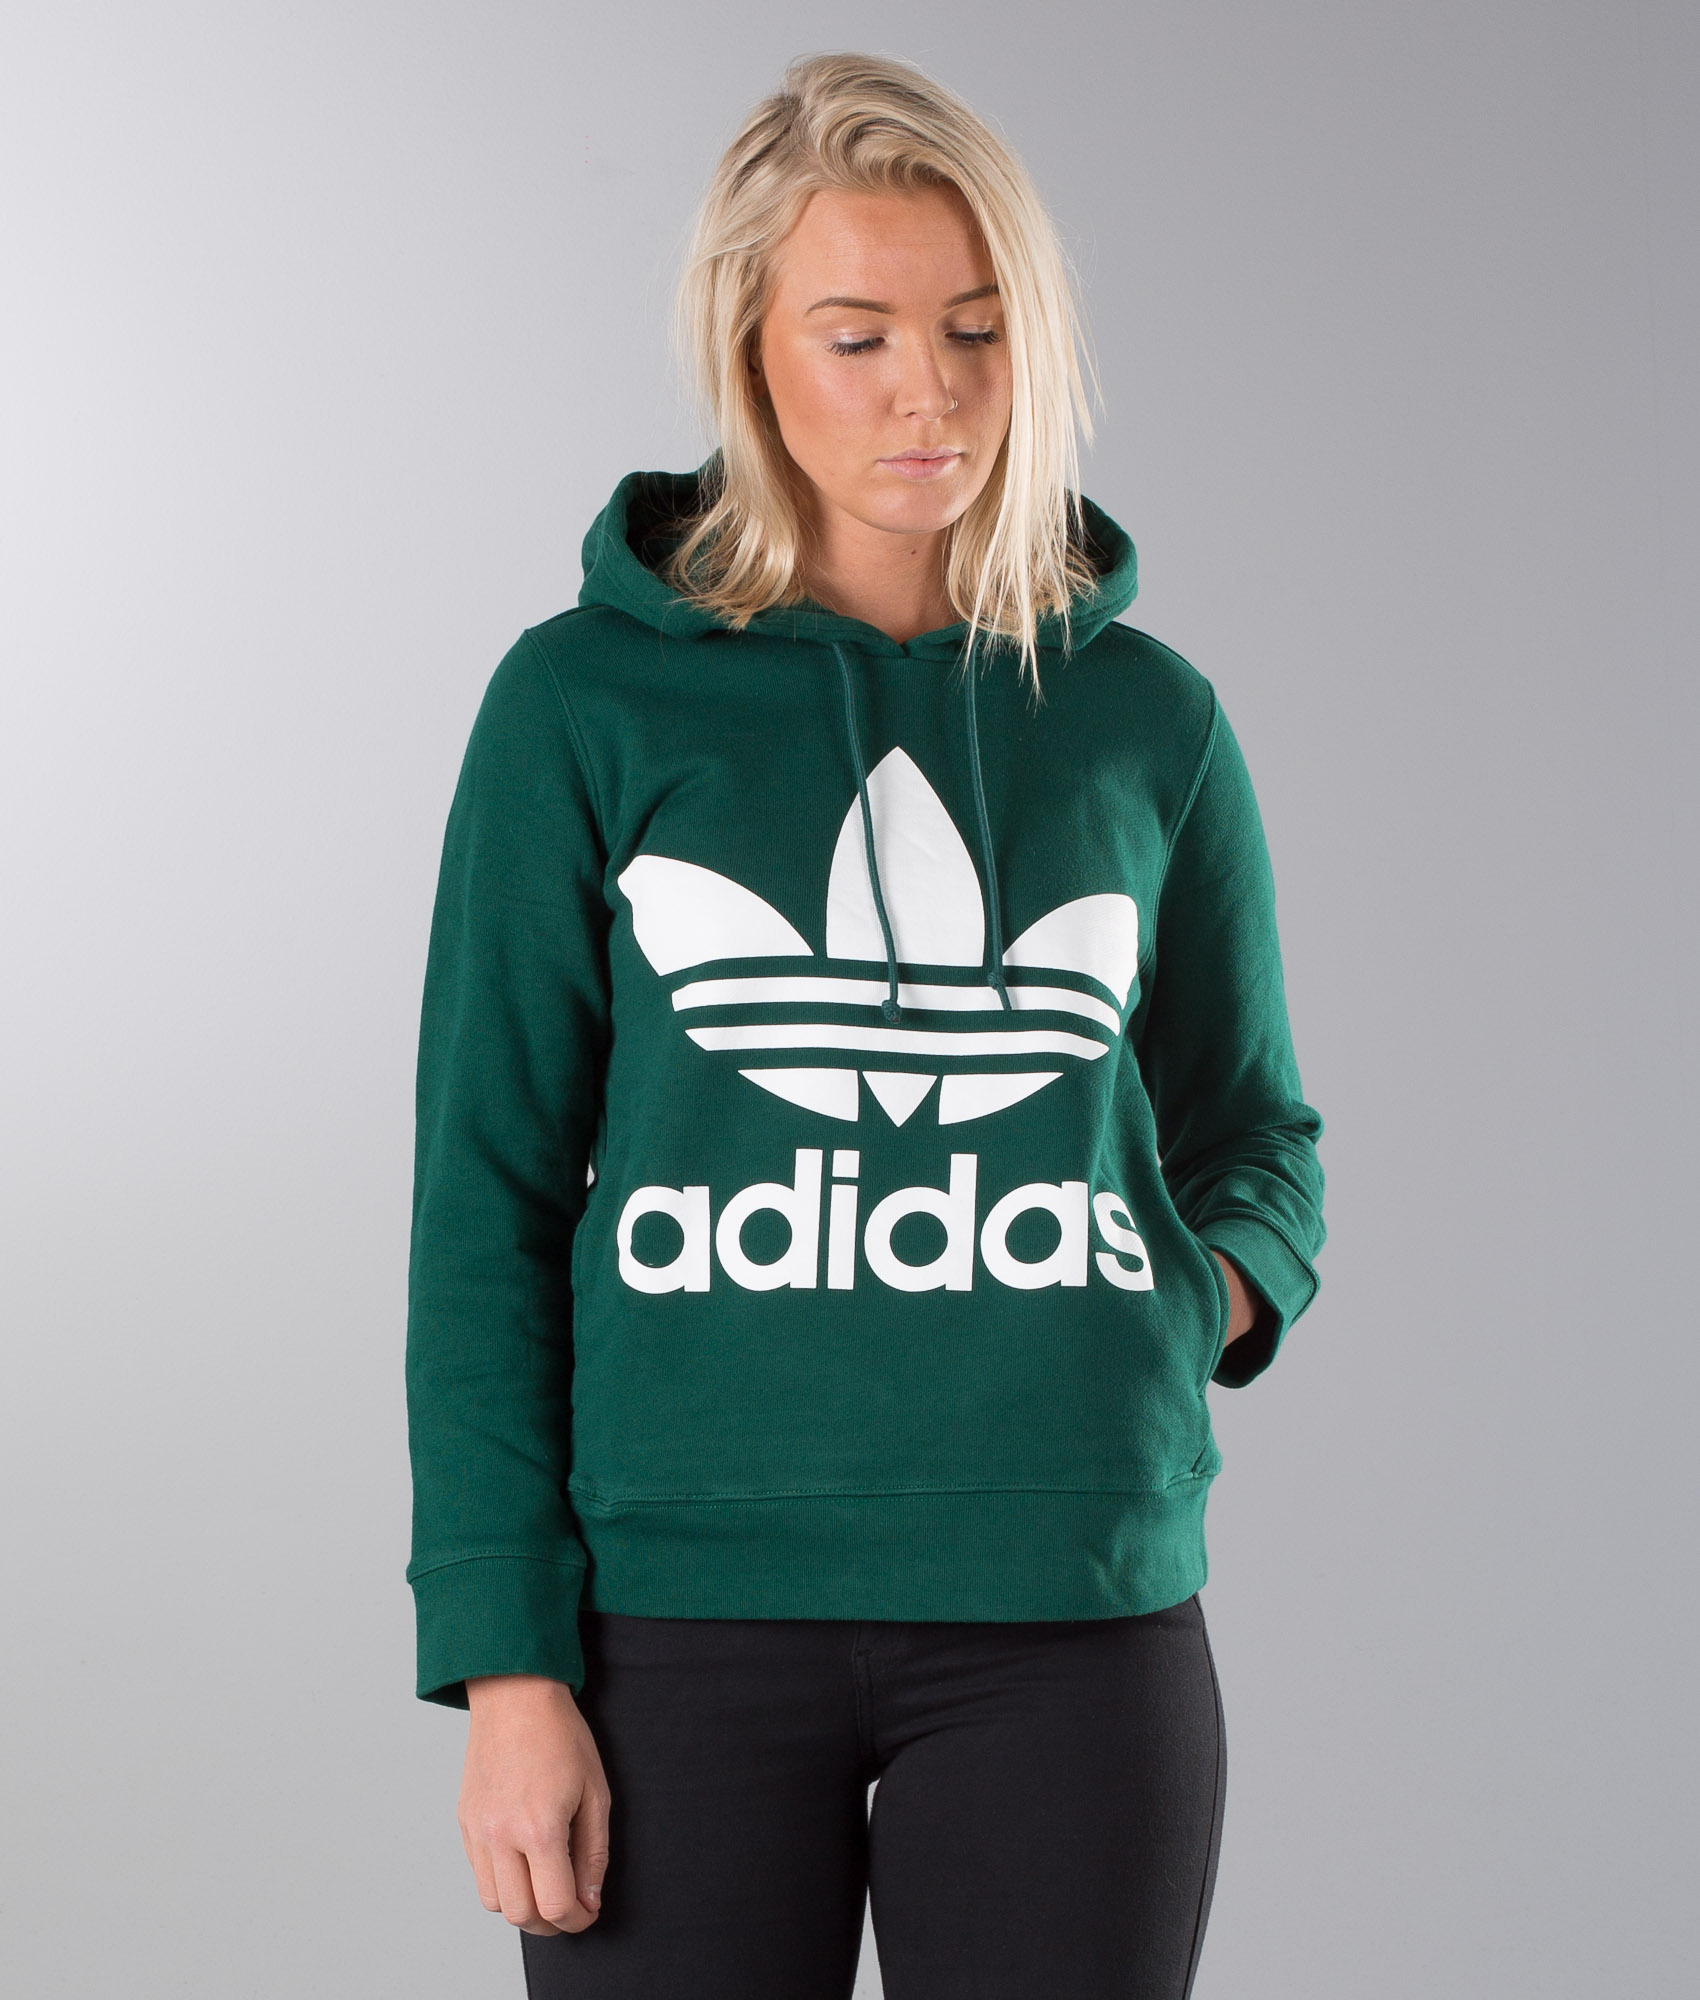 adidas trefoil hoodie Sale. Up to 48% Off. Free Shipping